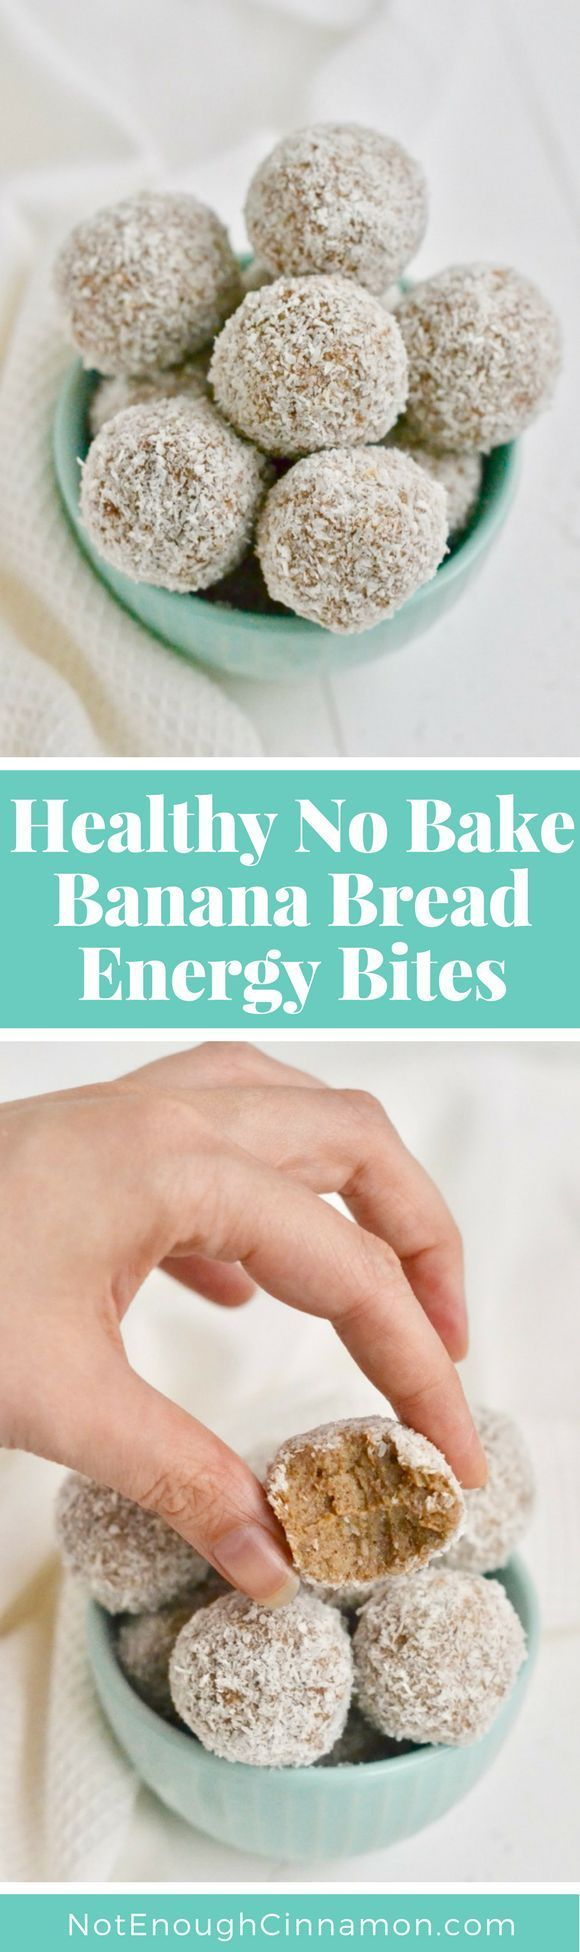 A convenient healthy no-bake snack or dessert that tastes just like banana bread! It's paleo, gluten free and super healthy! Find the recipe on NotEnoughCinnamon.com